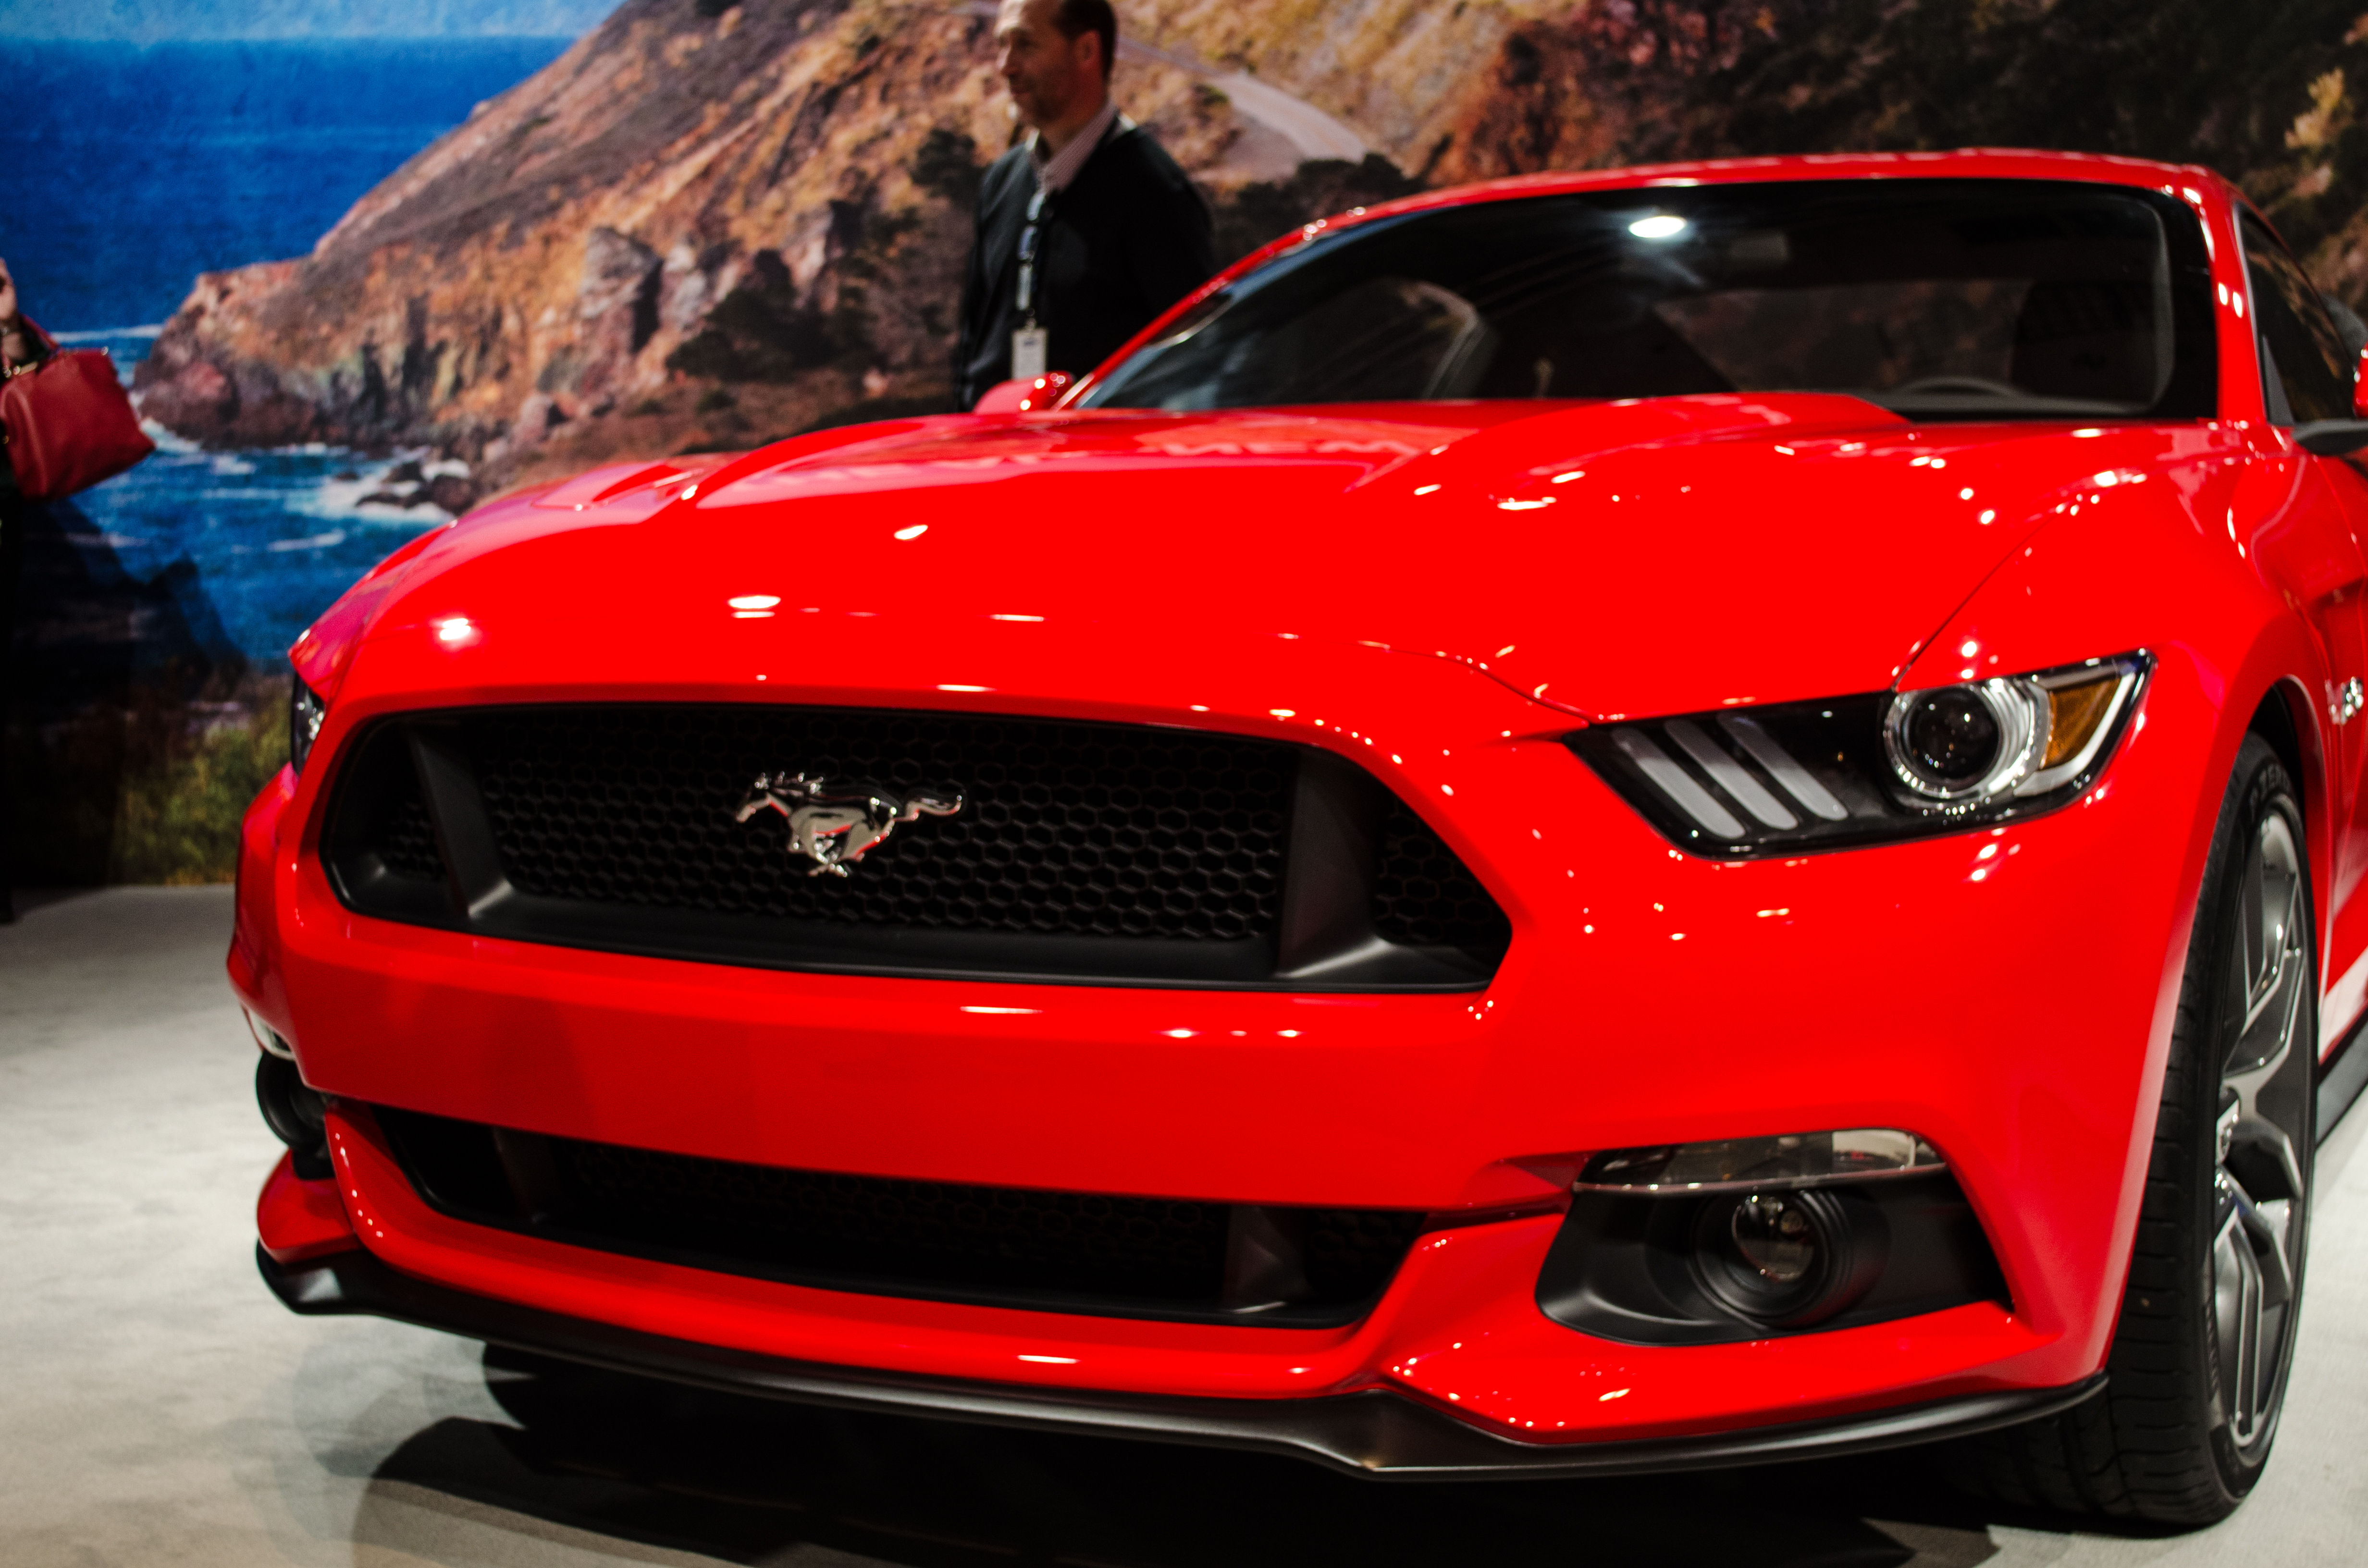 2015 Mustang Photos Is It Still King Of The Pony Cars Motor Review